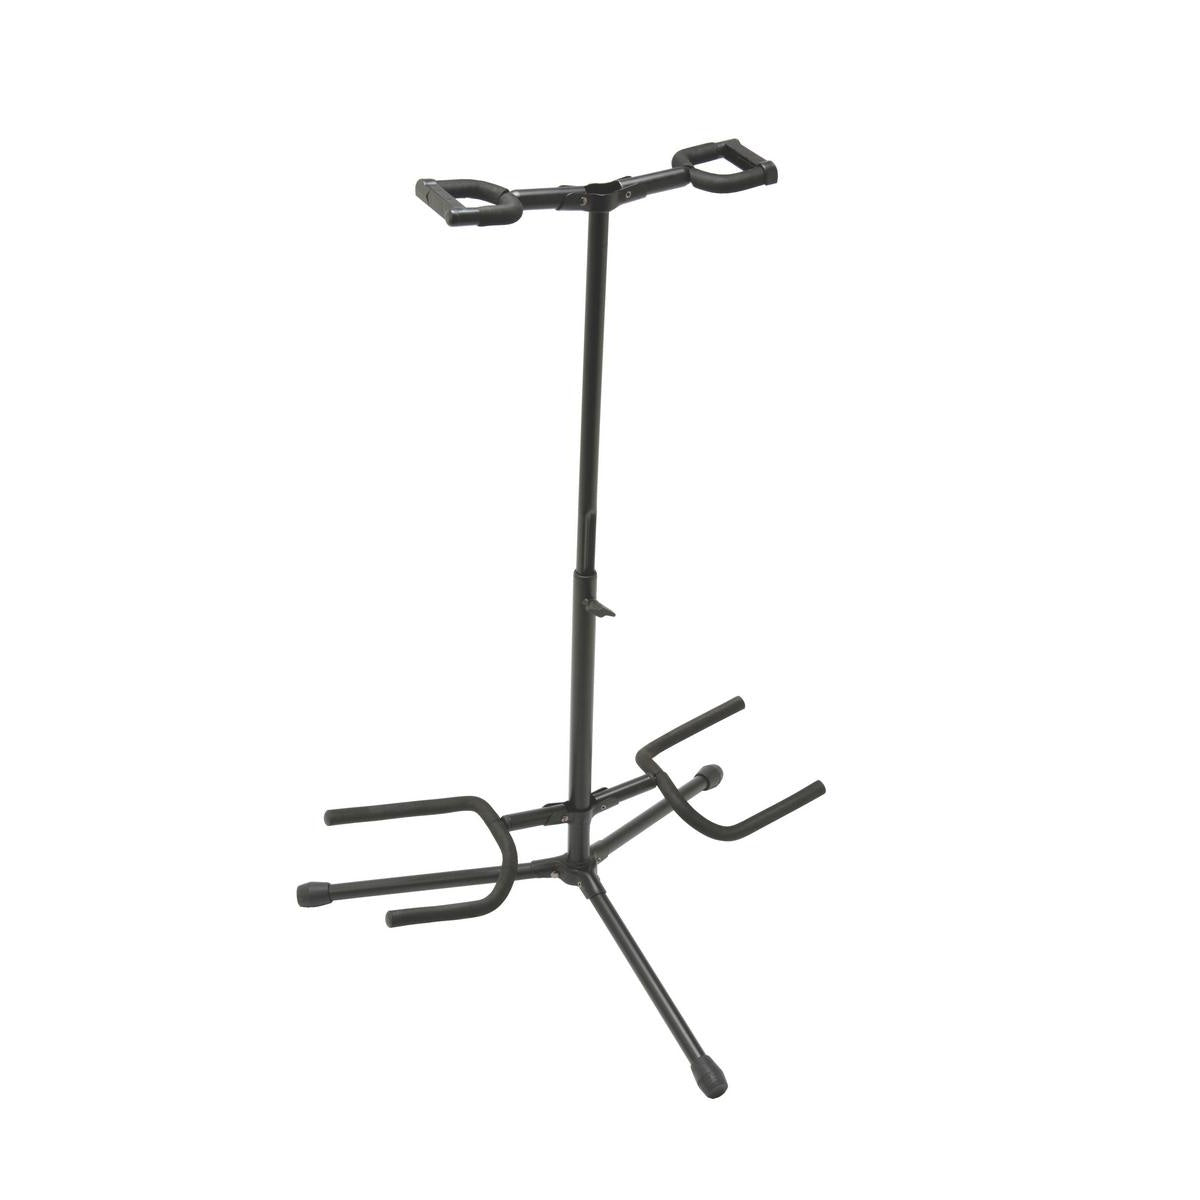 GS7221BD Deluxe Folding Double Guitar Stand